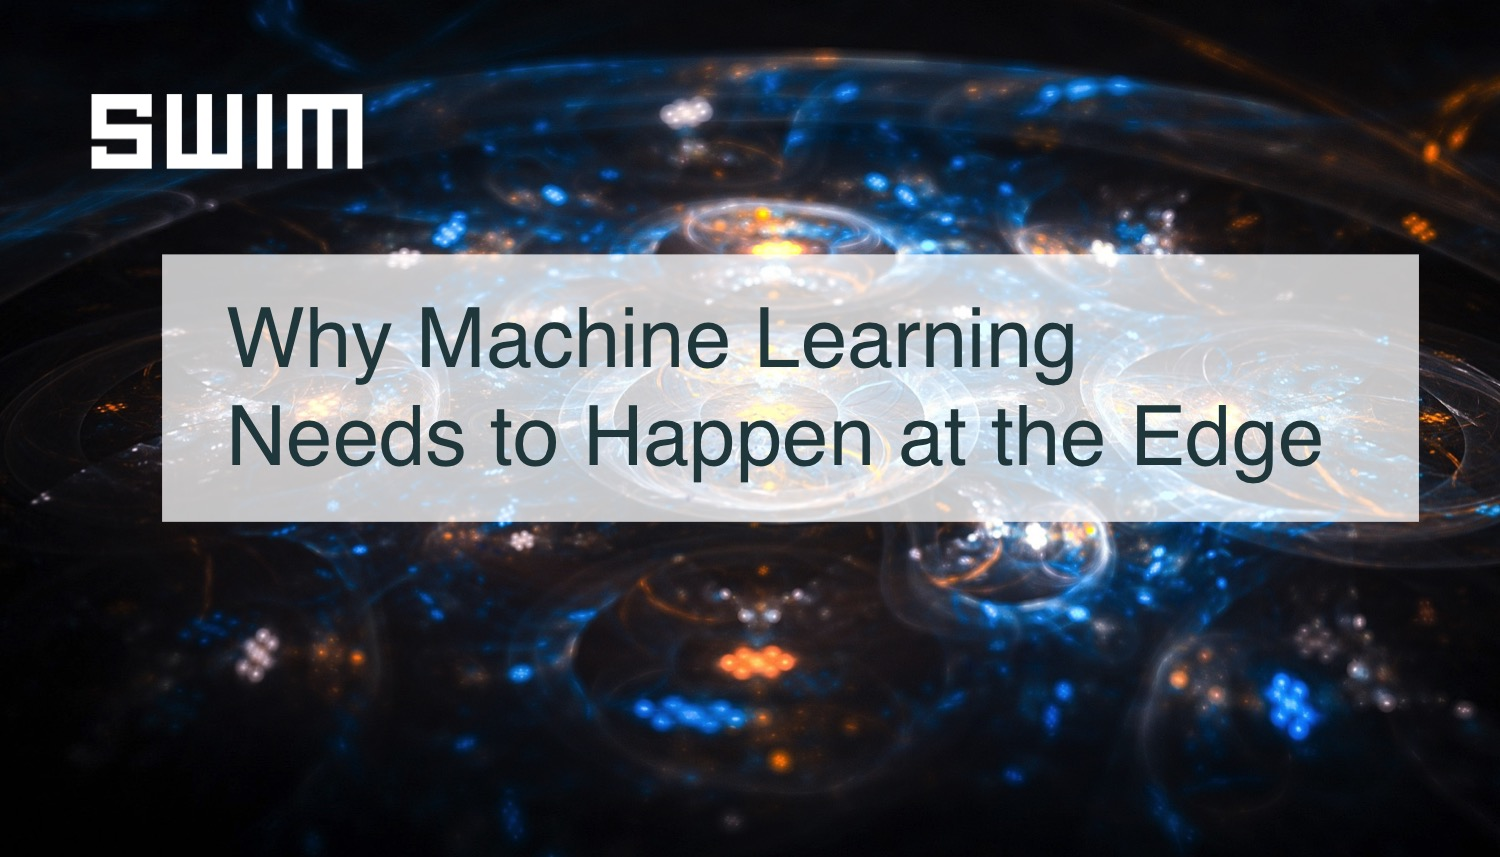 Why Machine Learning Needs to Happen at the Edge | Swim Inc.